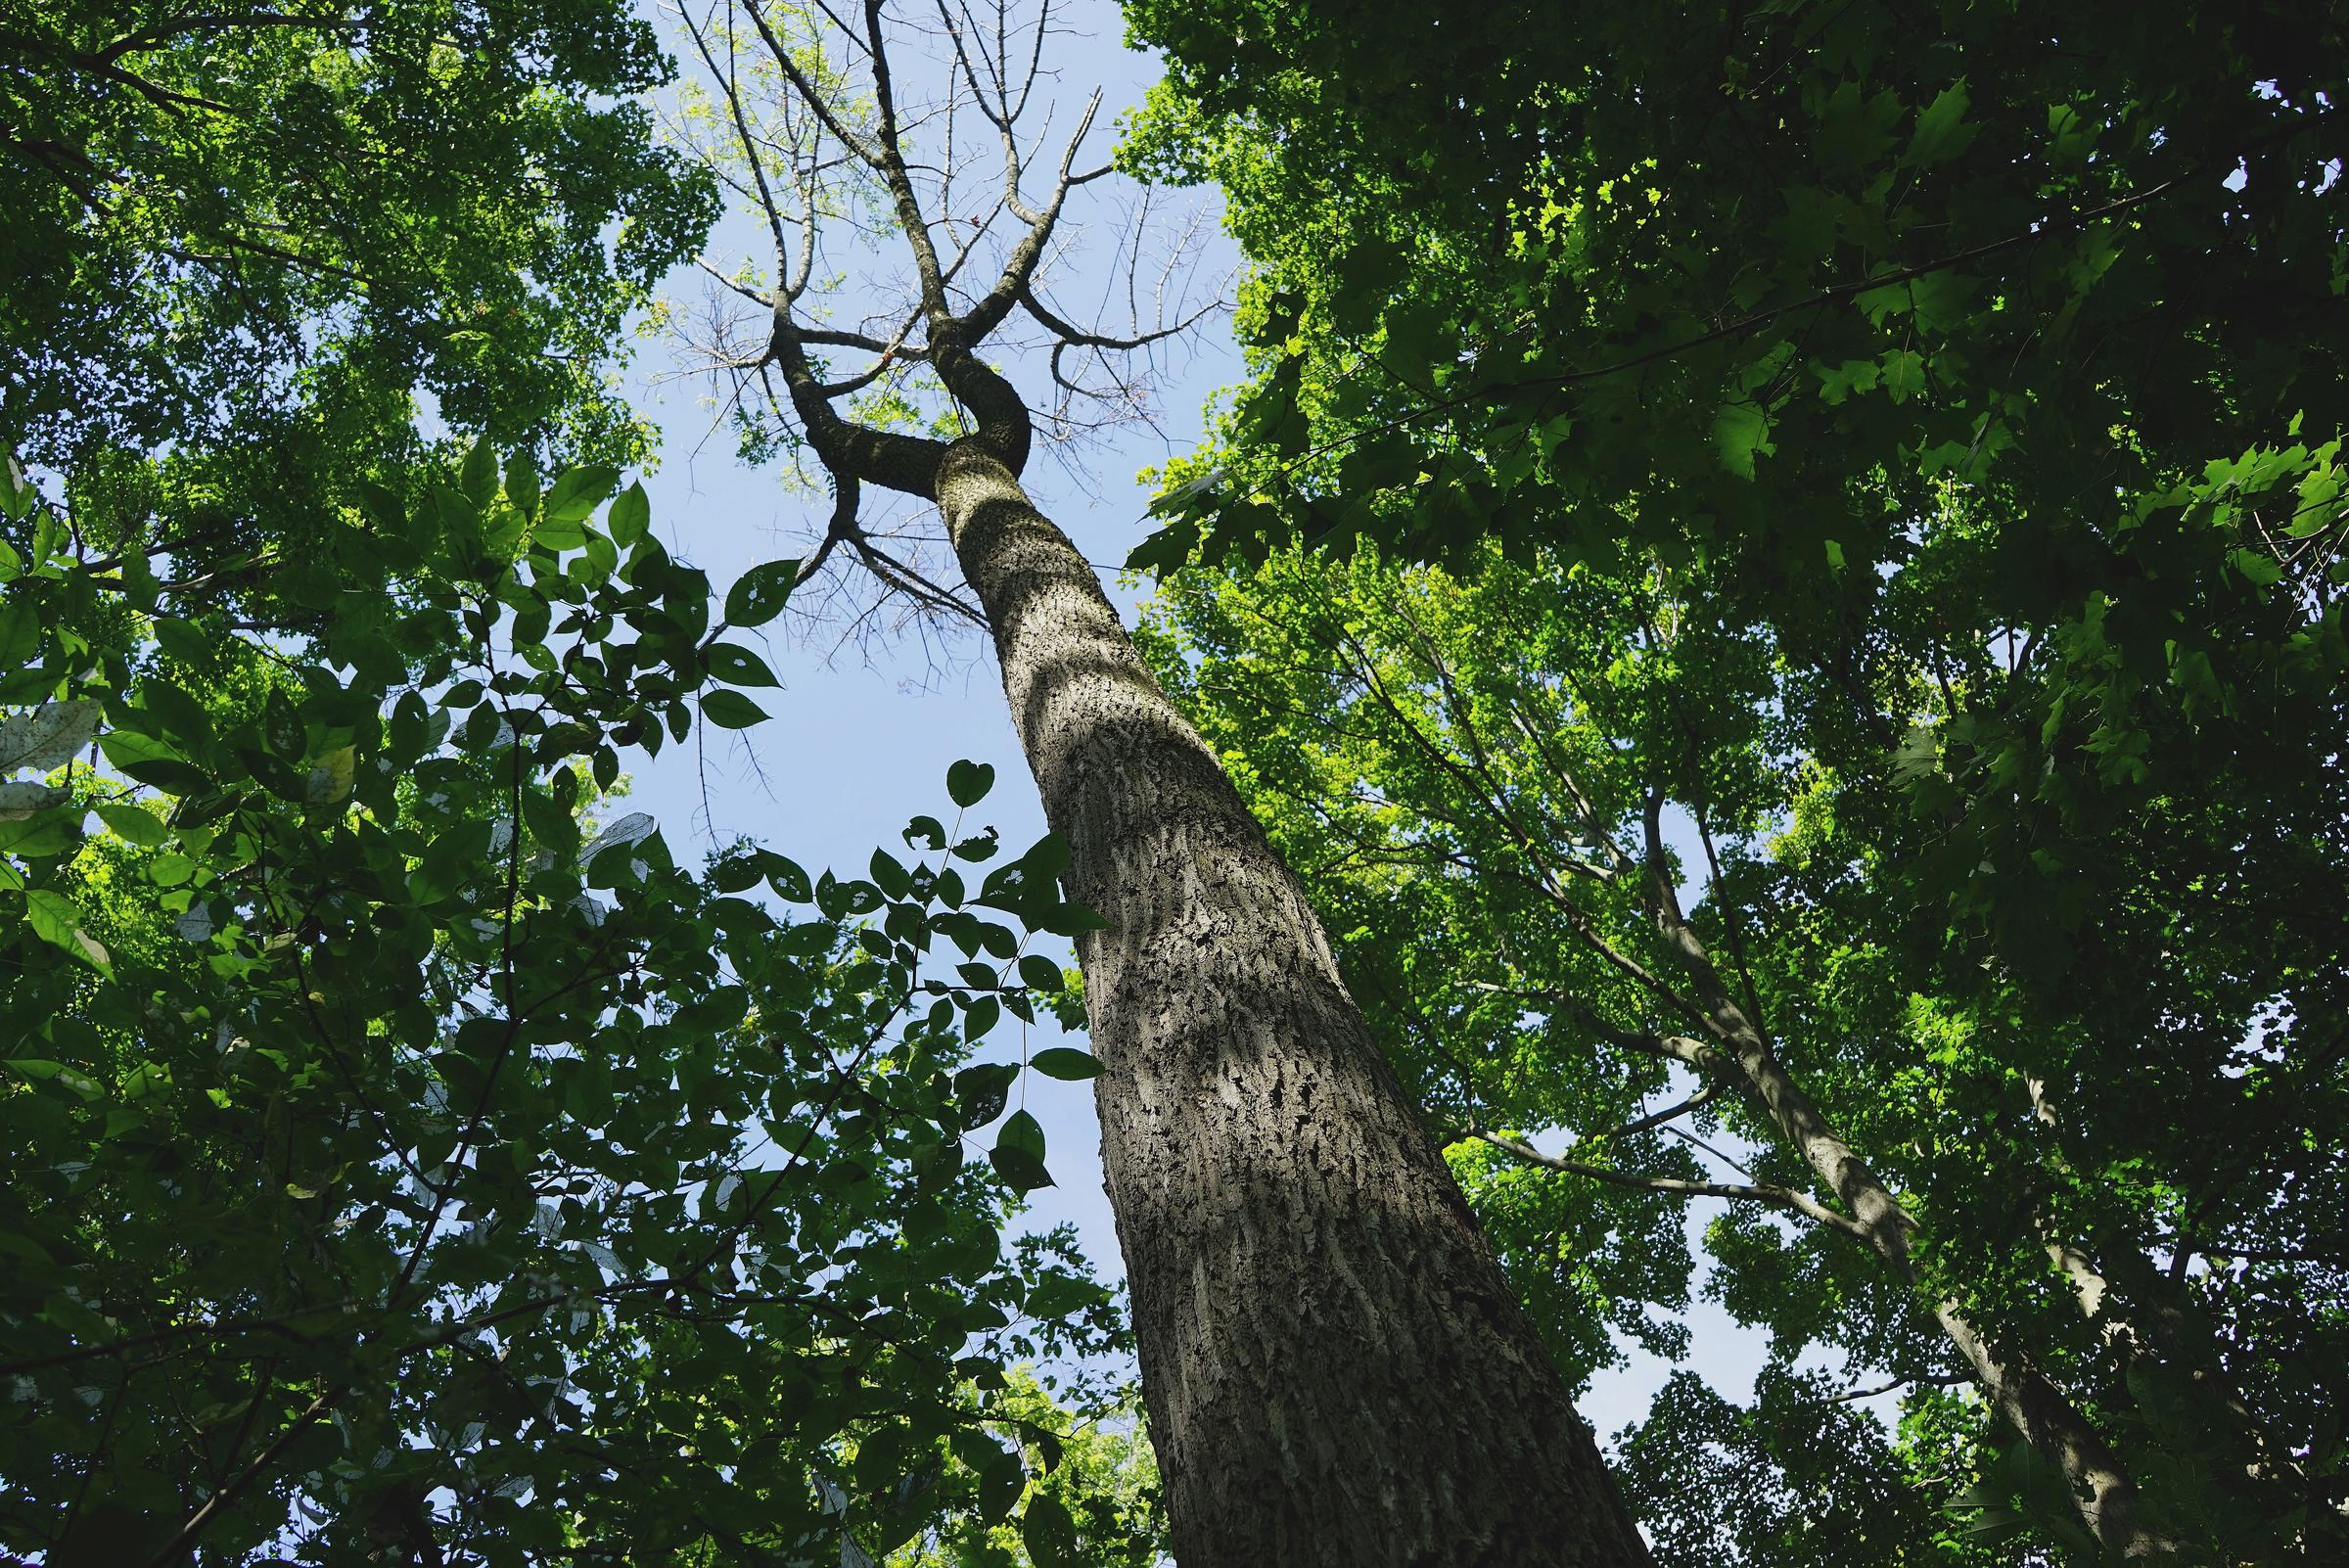 A dying ash tree infected by Emerald Ash Borer. Photo by Michael Hunter/Wikimedia Commons